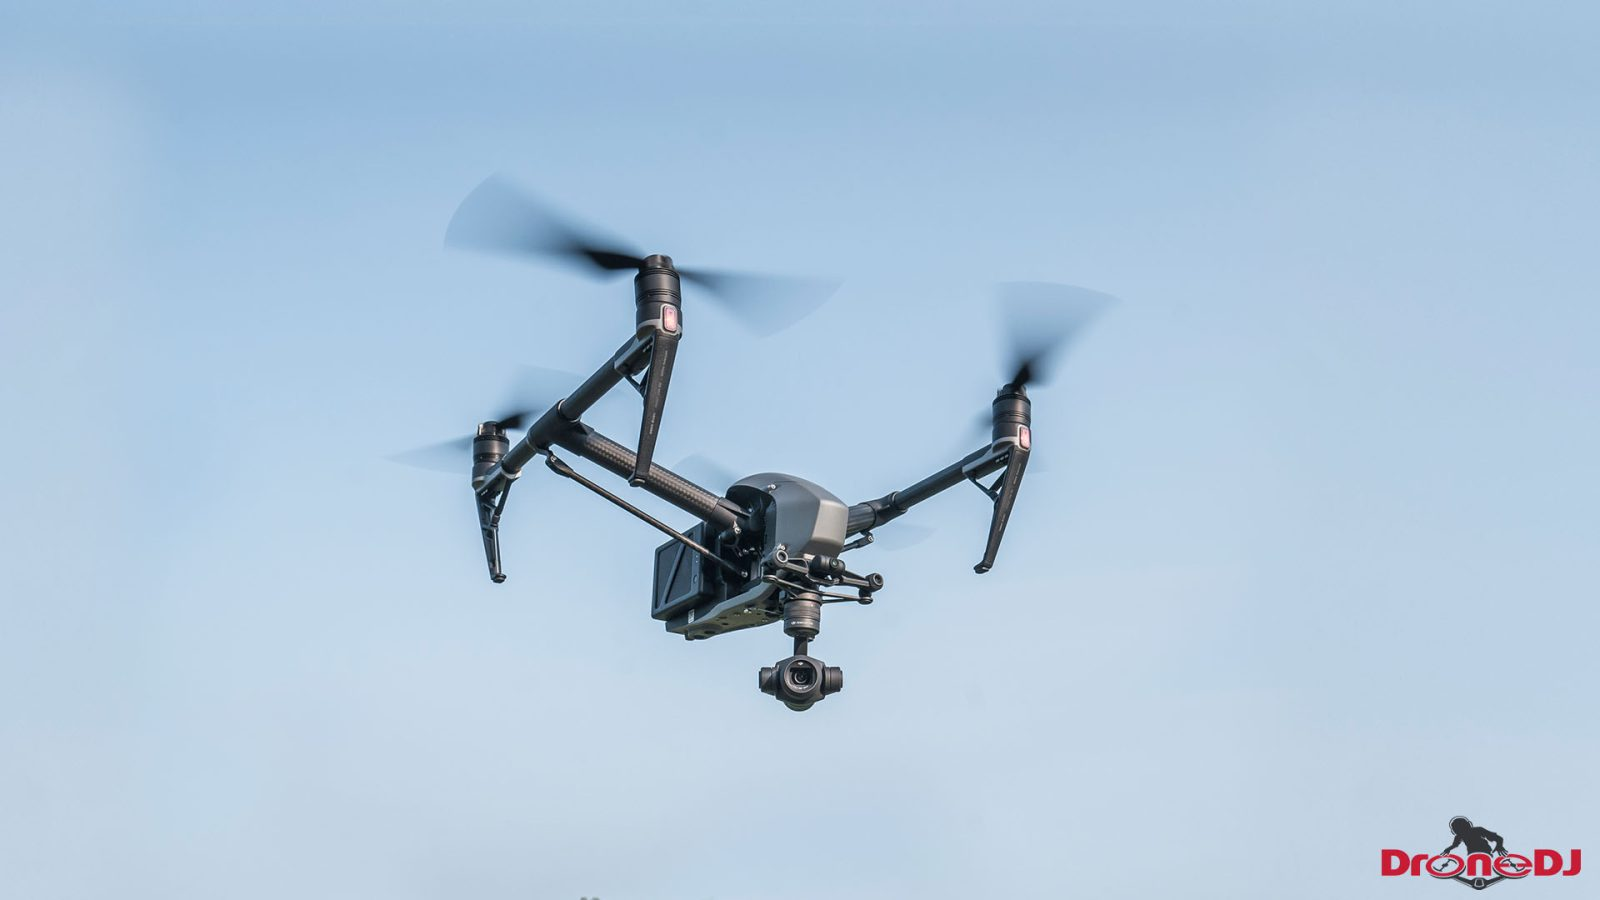 First Impressions The Dji Inspire 2 Is The King Of The